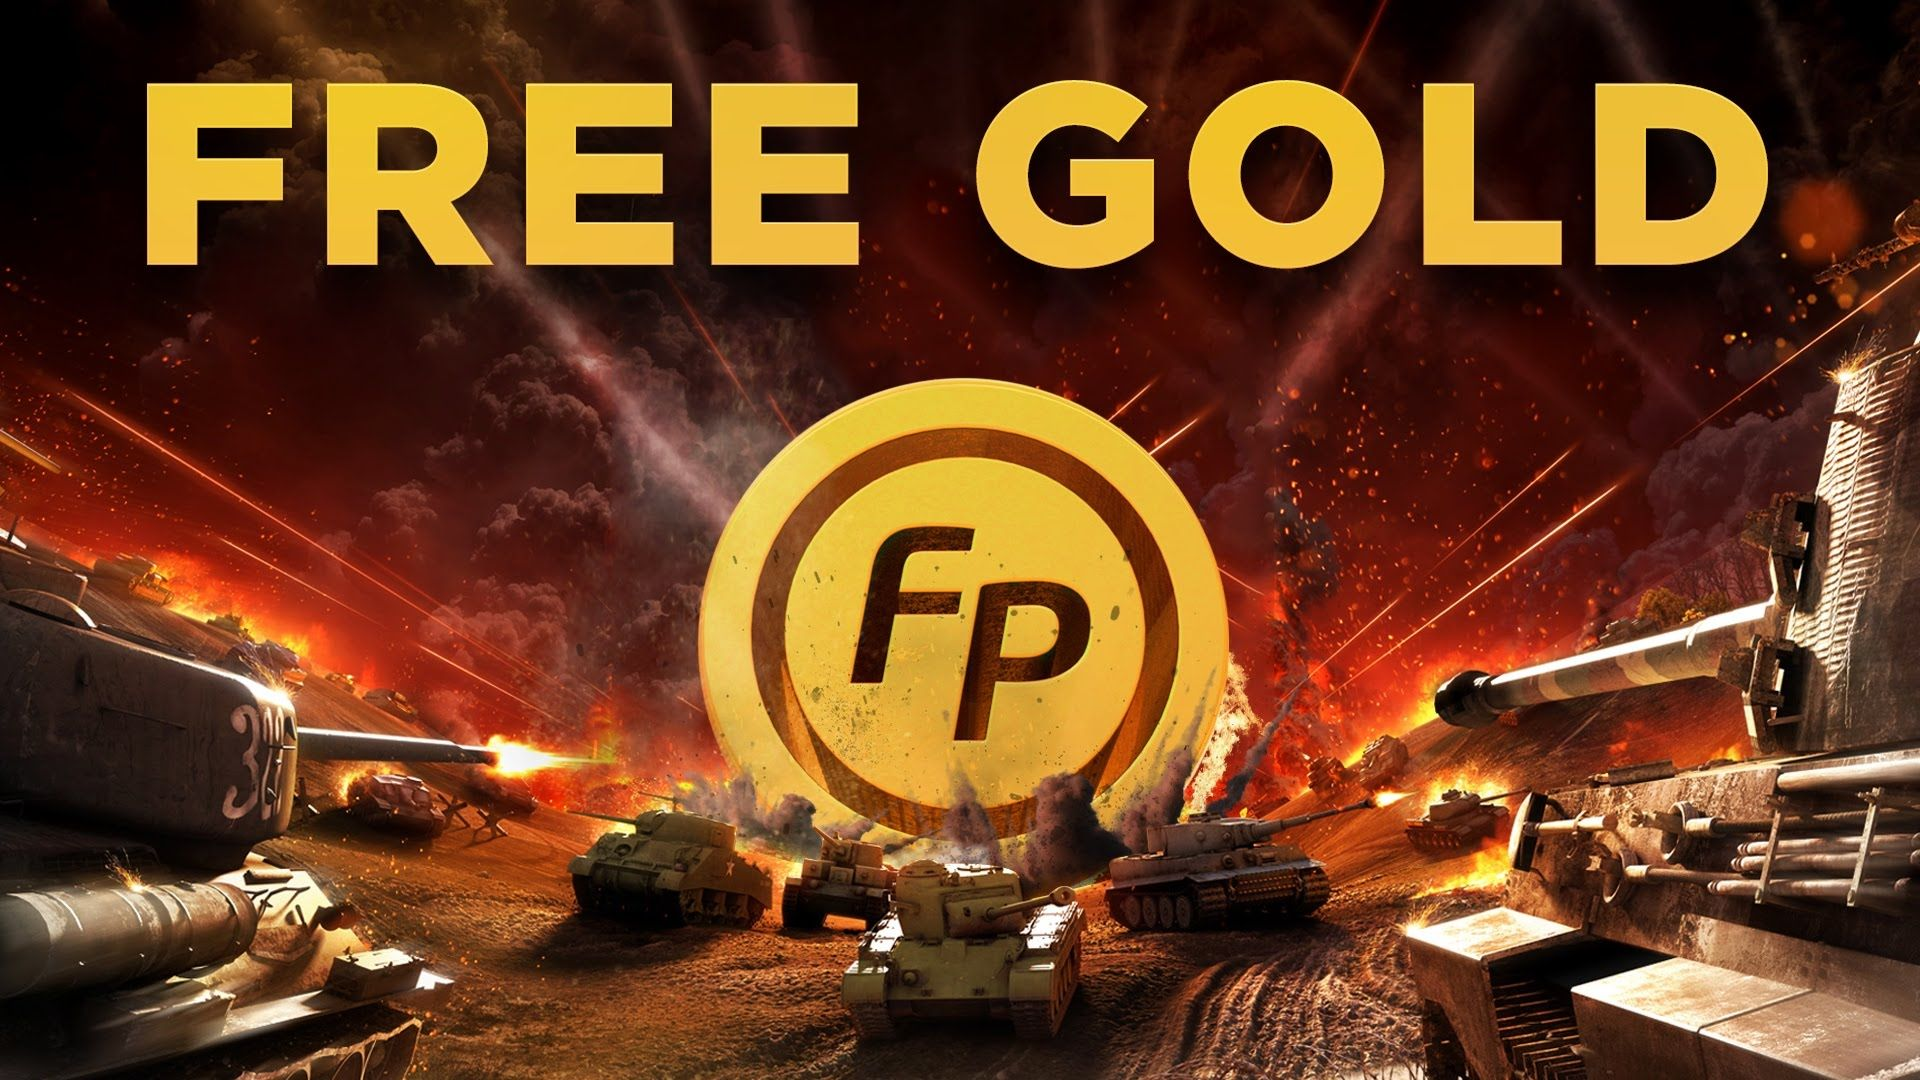 World Of Tanks Blitz Hack How To Get Unlimited Gold No Survey No Verification World Of Tanks Blitz Hack And Cheats World Of Tool Hacks Tank Blitz Ios Games